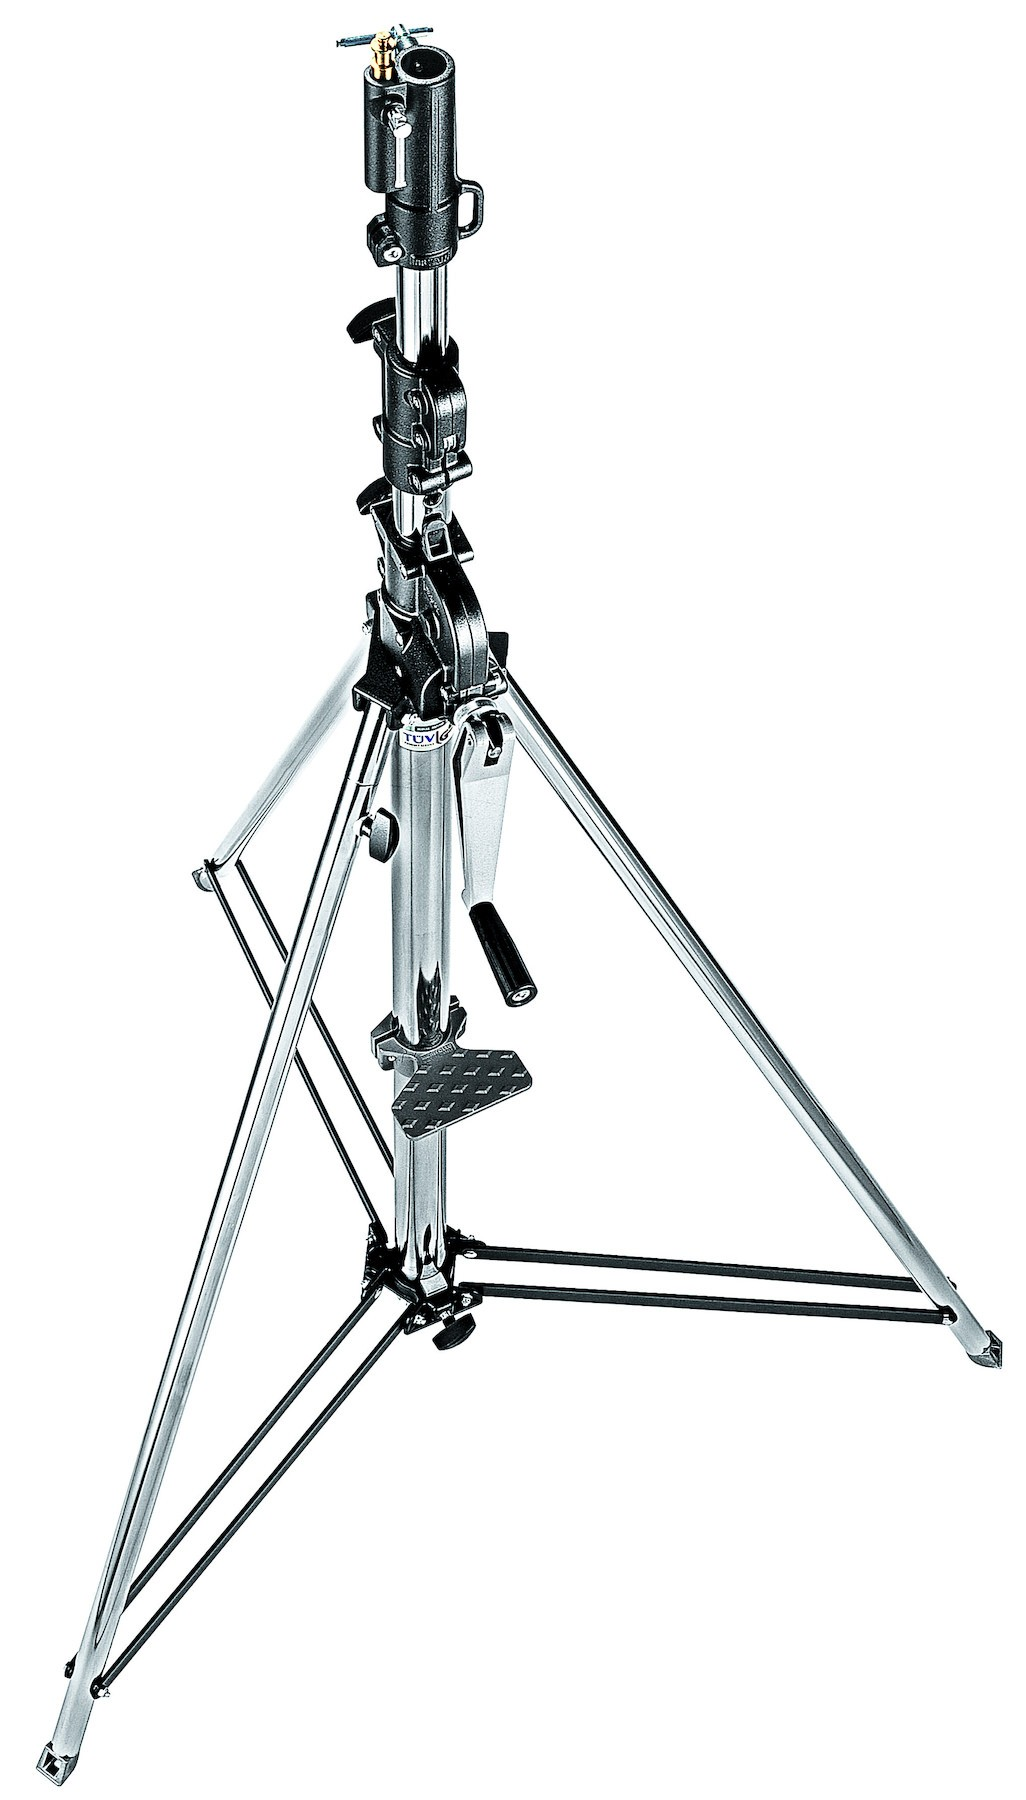 Manfrotto Avenger Wind Up Photo Stand 3-Section with Geared Column.